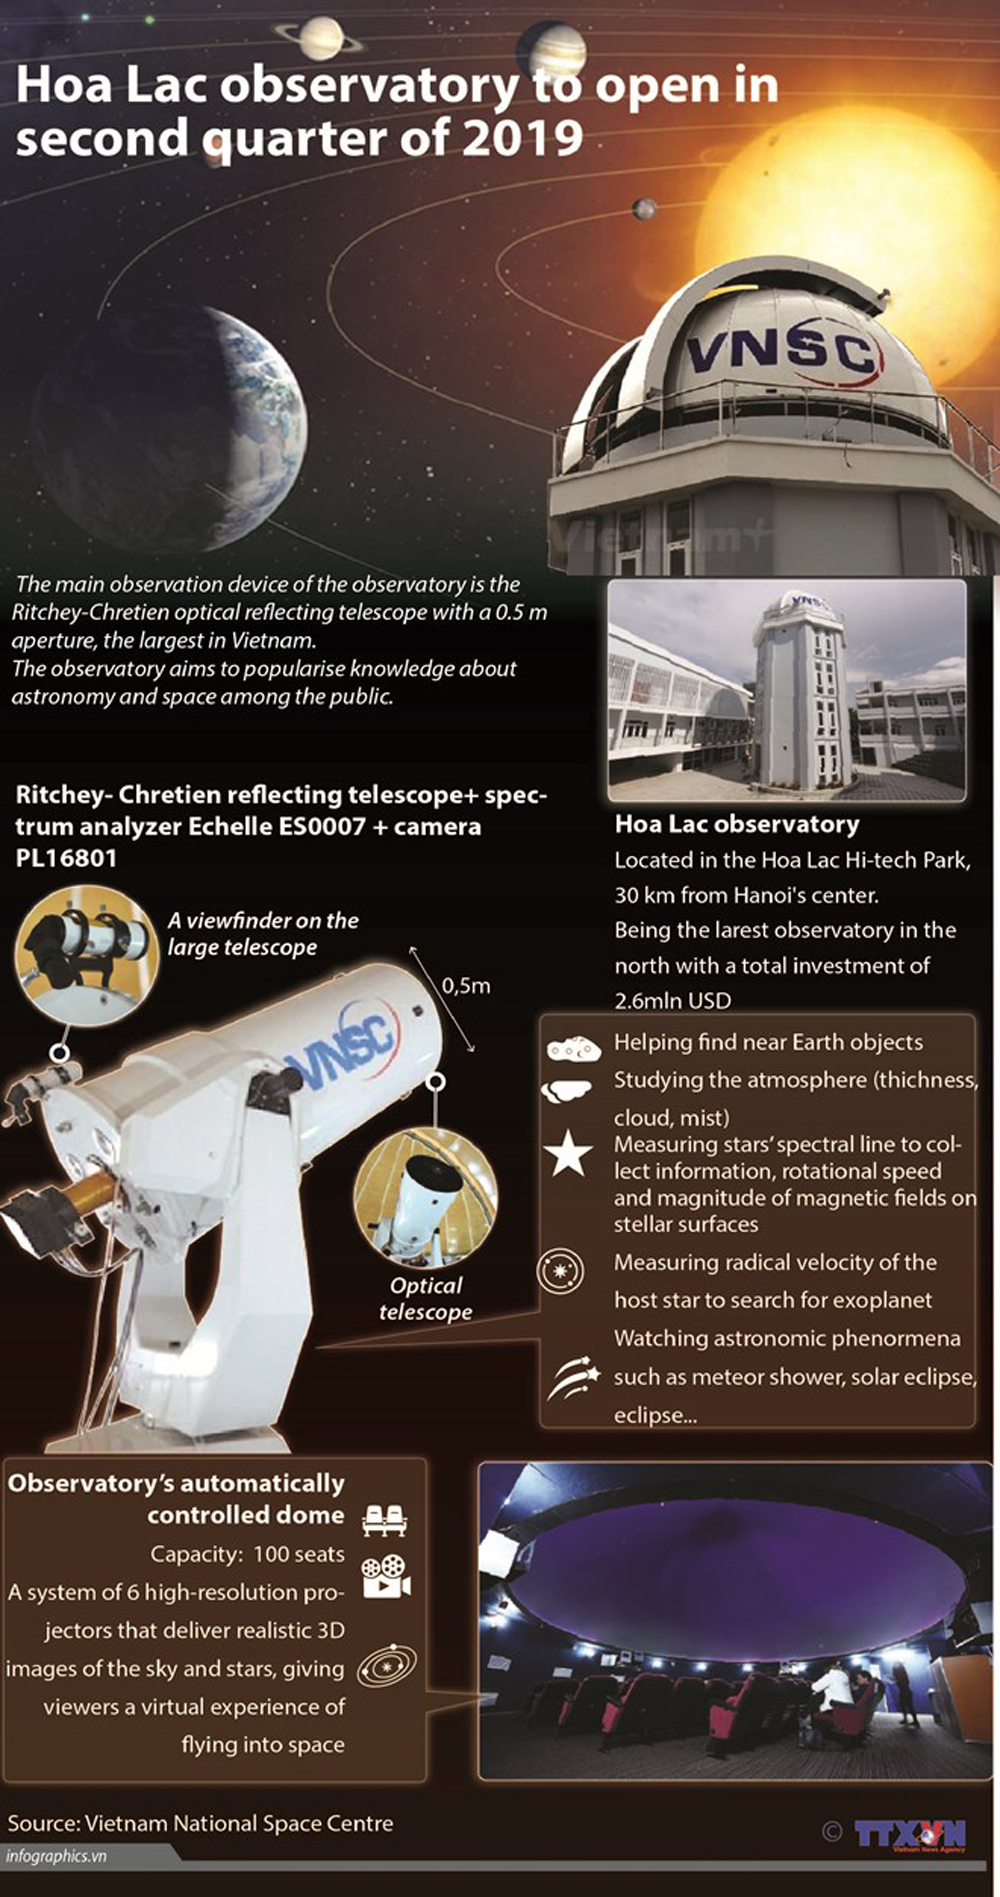 Hoa Lac observatory, Second Quarter, main observation device, astronomy and space, total investment